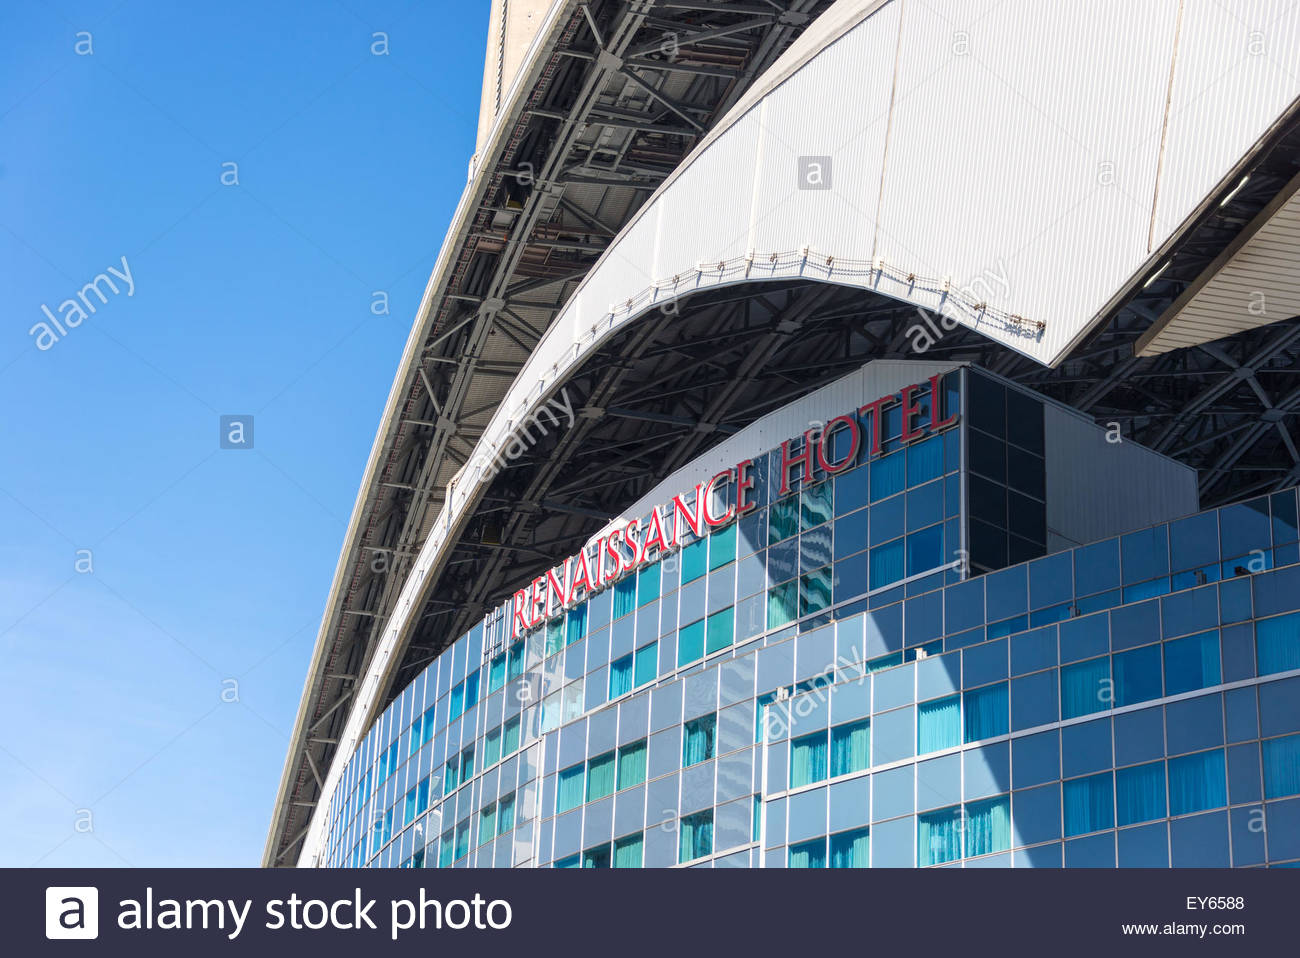 The roof and exterior of the Renaissance Hotel which is built into the Rogers Centre baseball stadium.  Rogers Centre - Stock Image